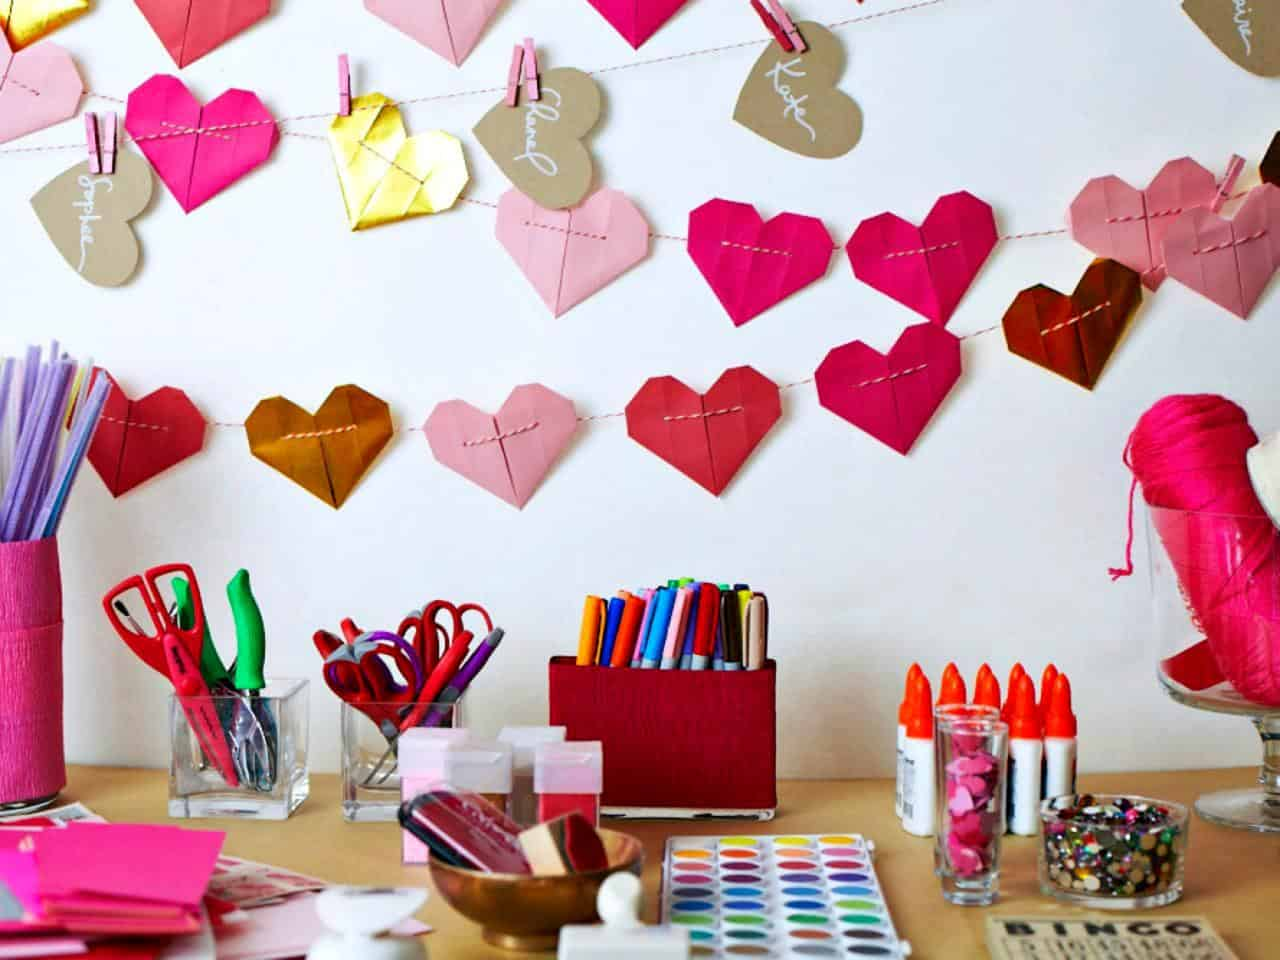 Origami heart garlands